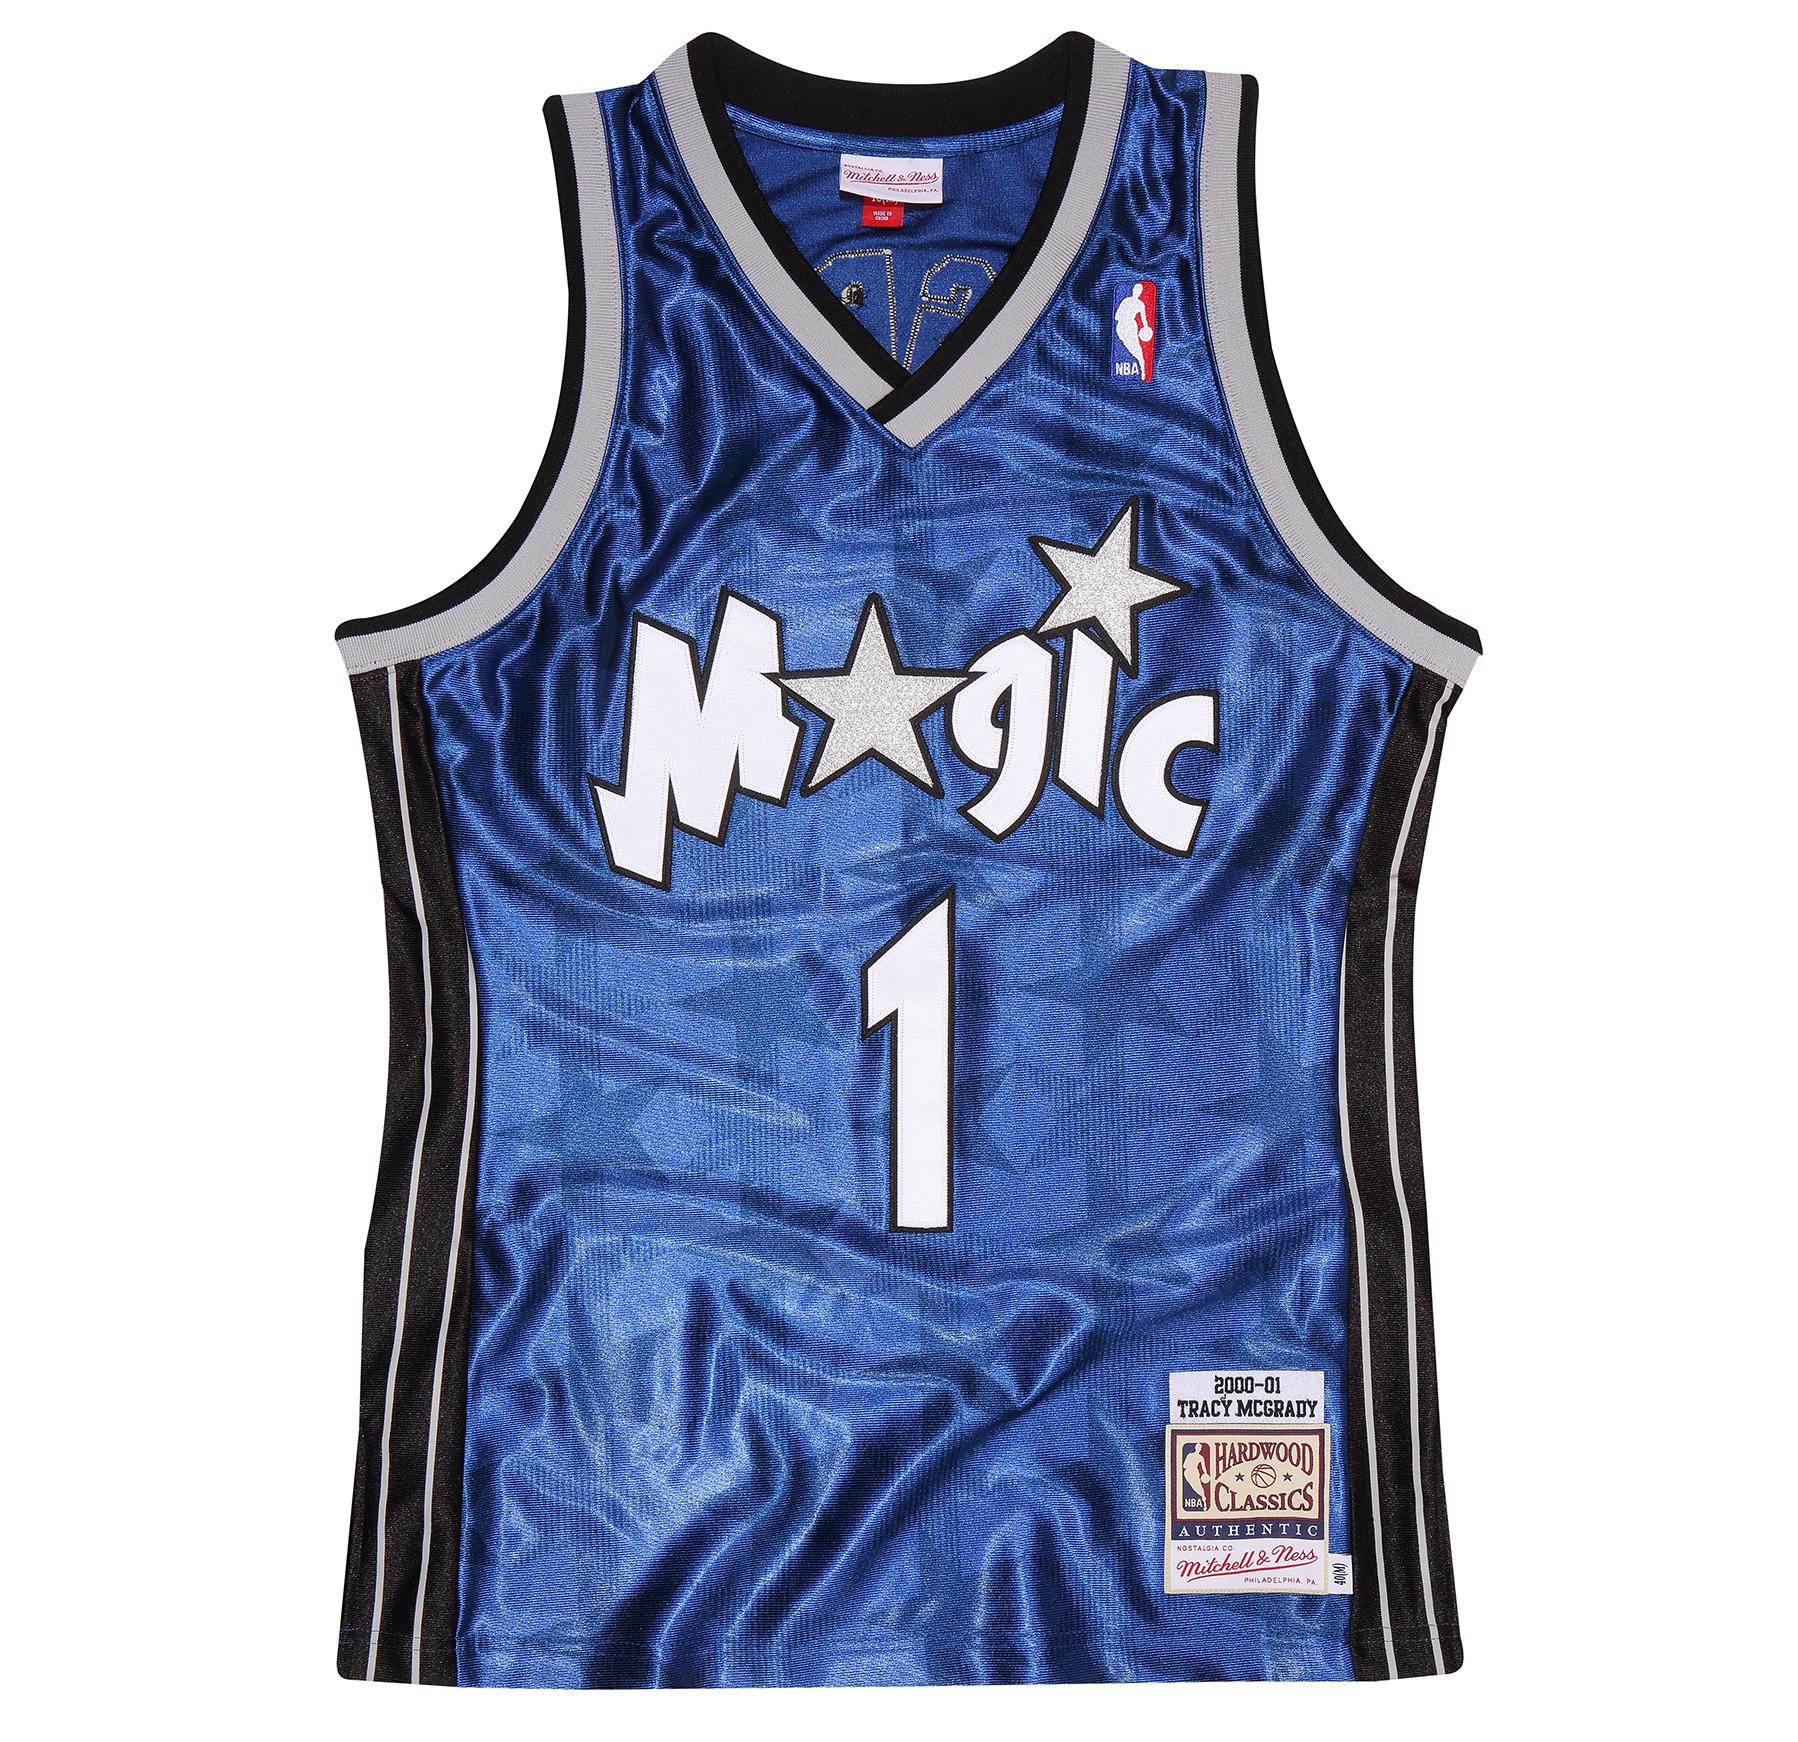 21022c503 Tracy McGrady 2000-01 Road Authentic Jersey Orlando Magic